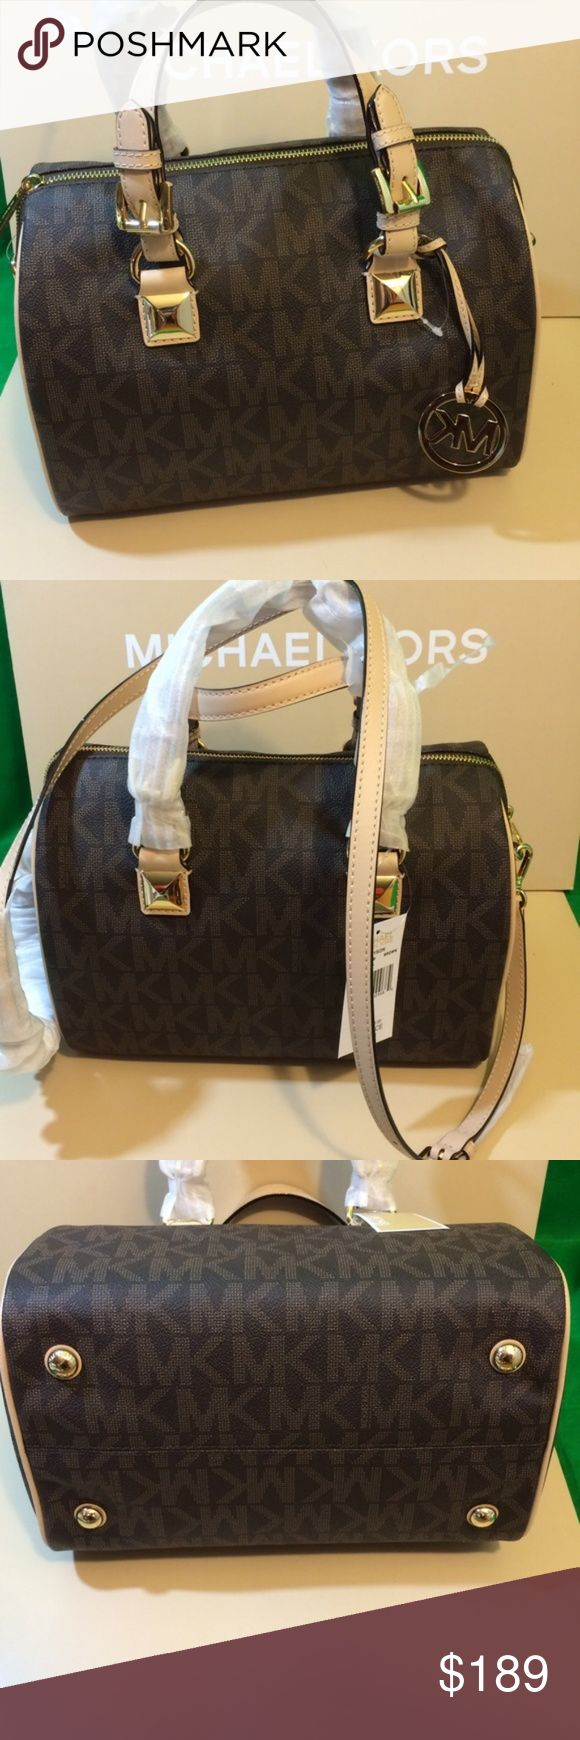 NWT MICHAEL KORS SIGNATURE GRAYSON BLACK BAG SOLD New with tags, med / large size, Creme colored straps, MICHAEL KORS SIGNATURE GRAYSON BLACK SATCHEL CROSSBODY STRAP HANDBAG $298 Michael Kors Bags